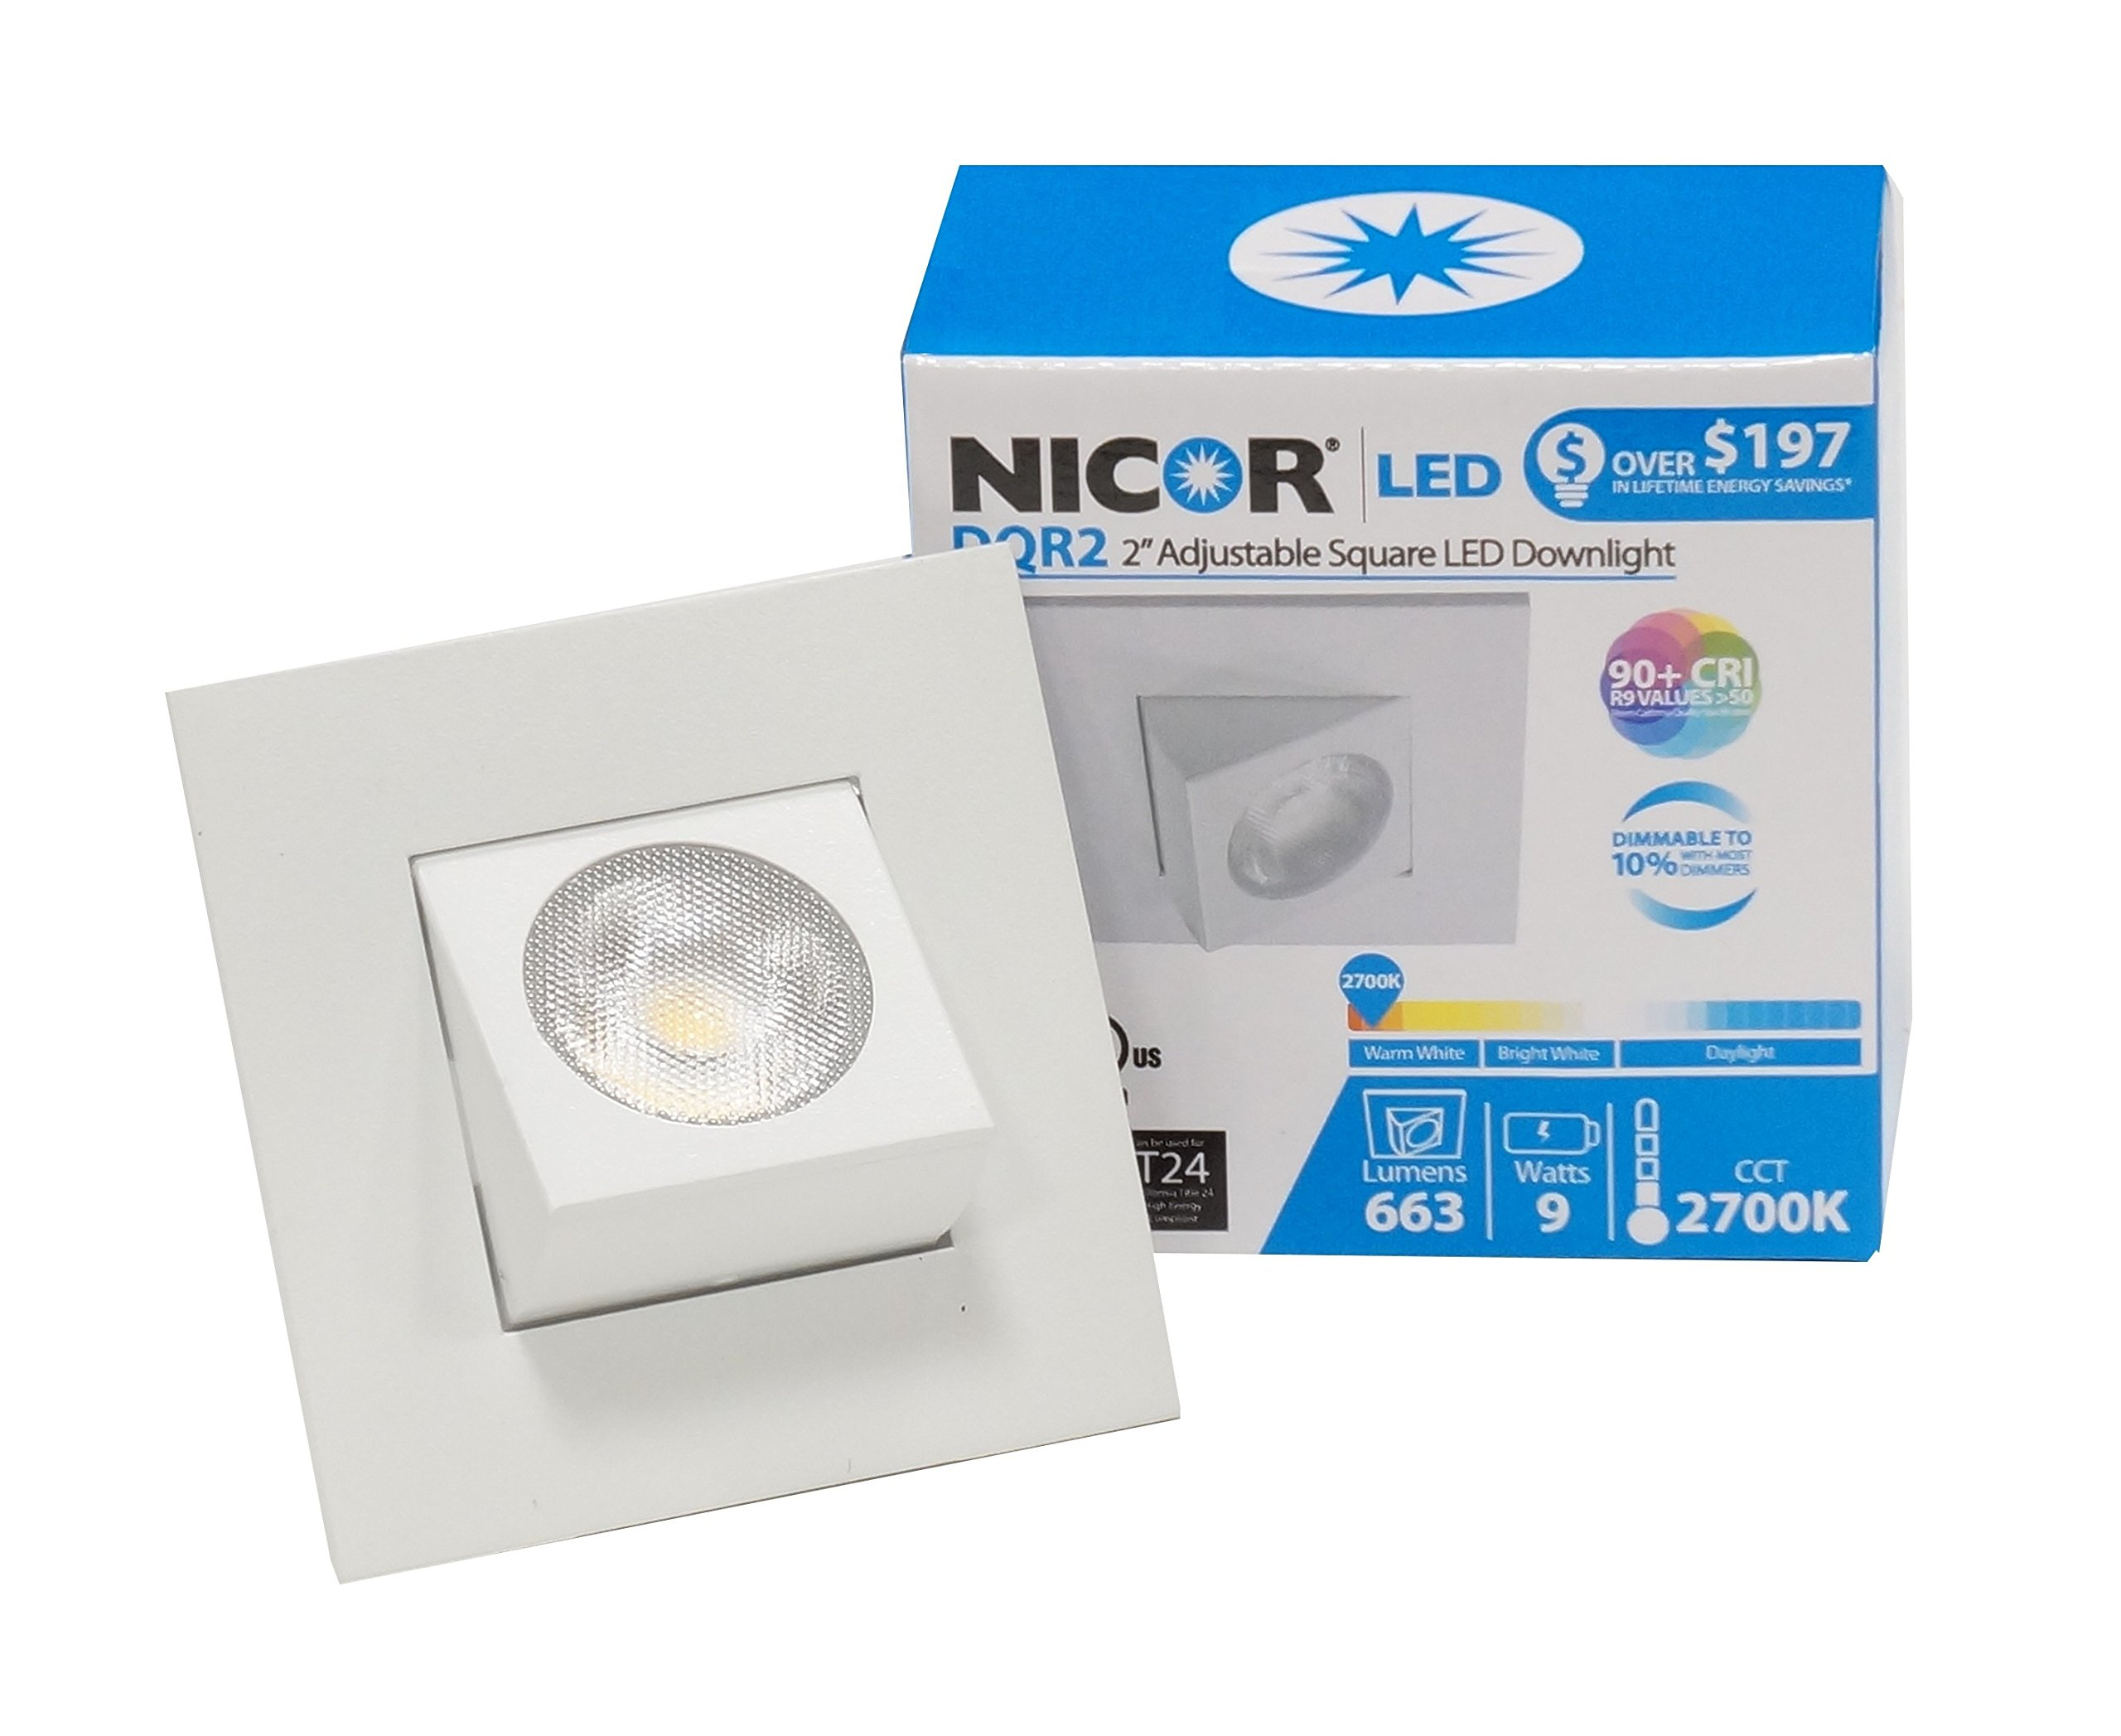 NICOR Lighting 2-Inch Adjustable Square Eyeball 2700K LED Downlight Fixture for 2-Inch Recessed Housings, White (DQR2-AA-10-120-2K-WH) by NICOR Lighting (Image #1)